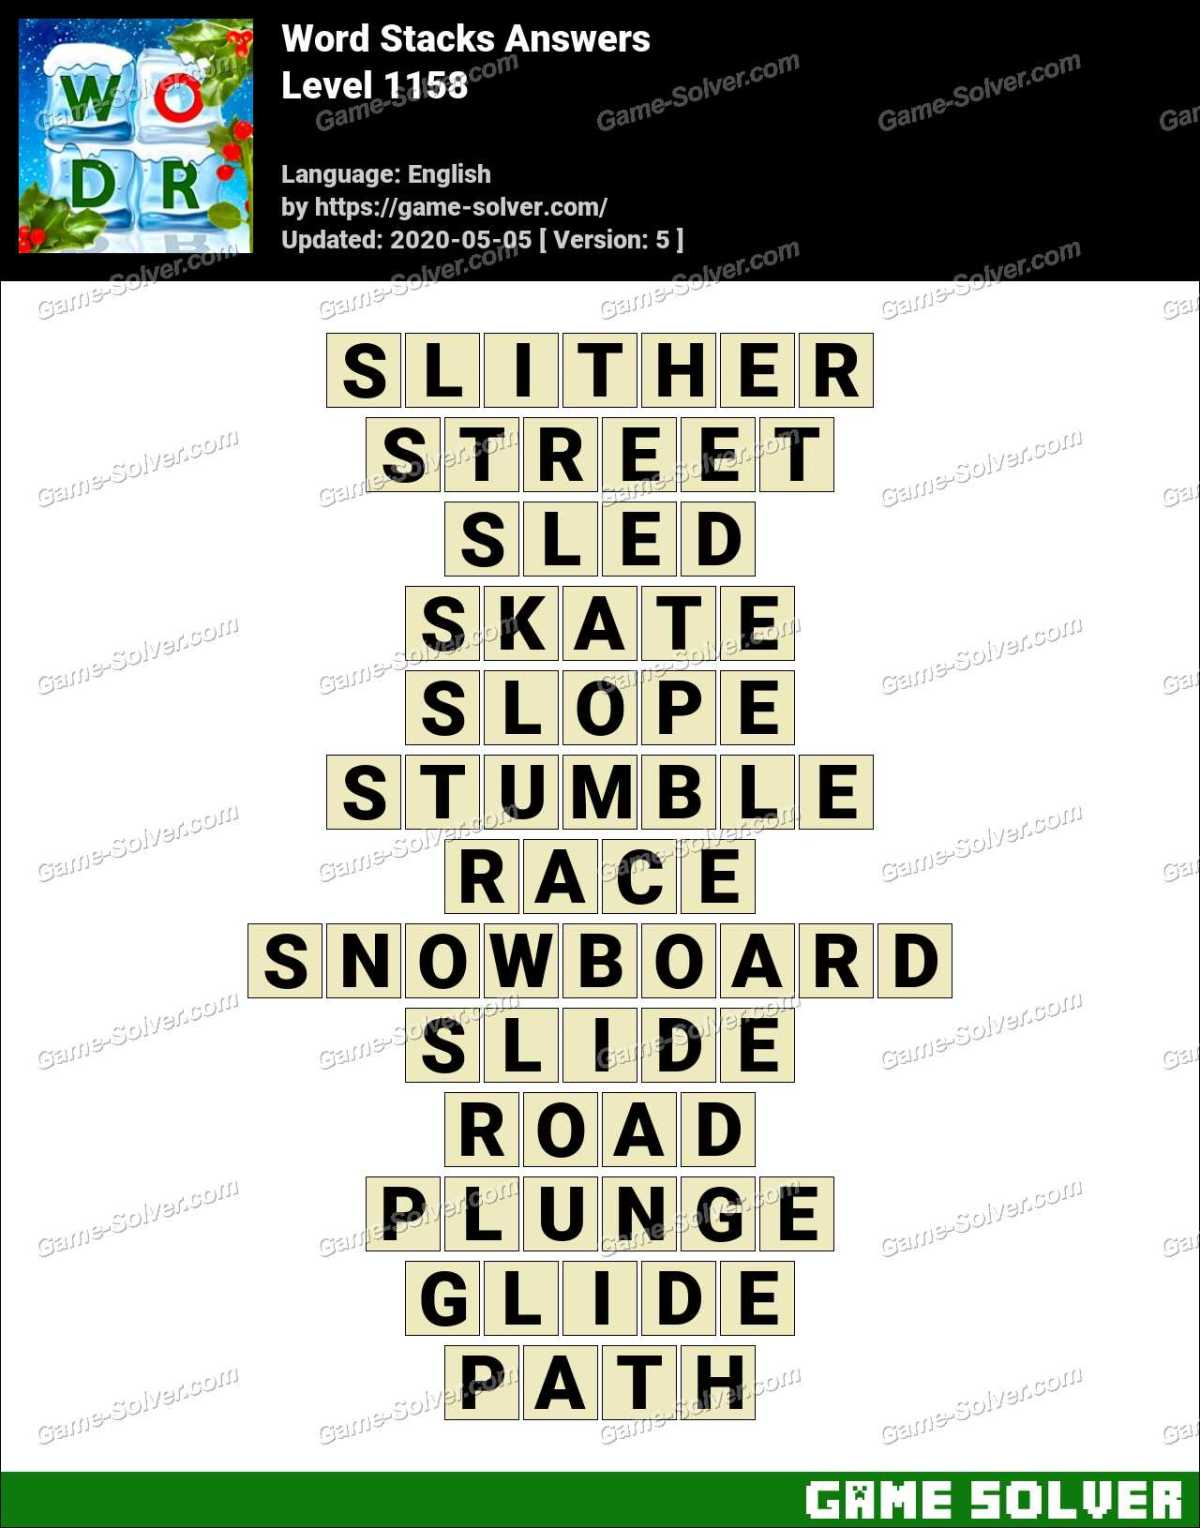 Word Stacks Level 1158 Answers